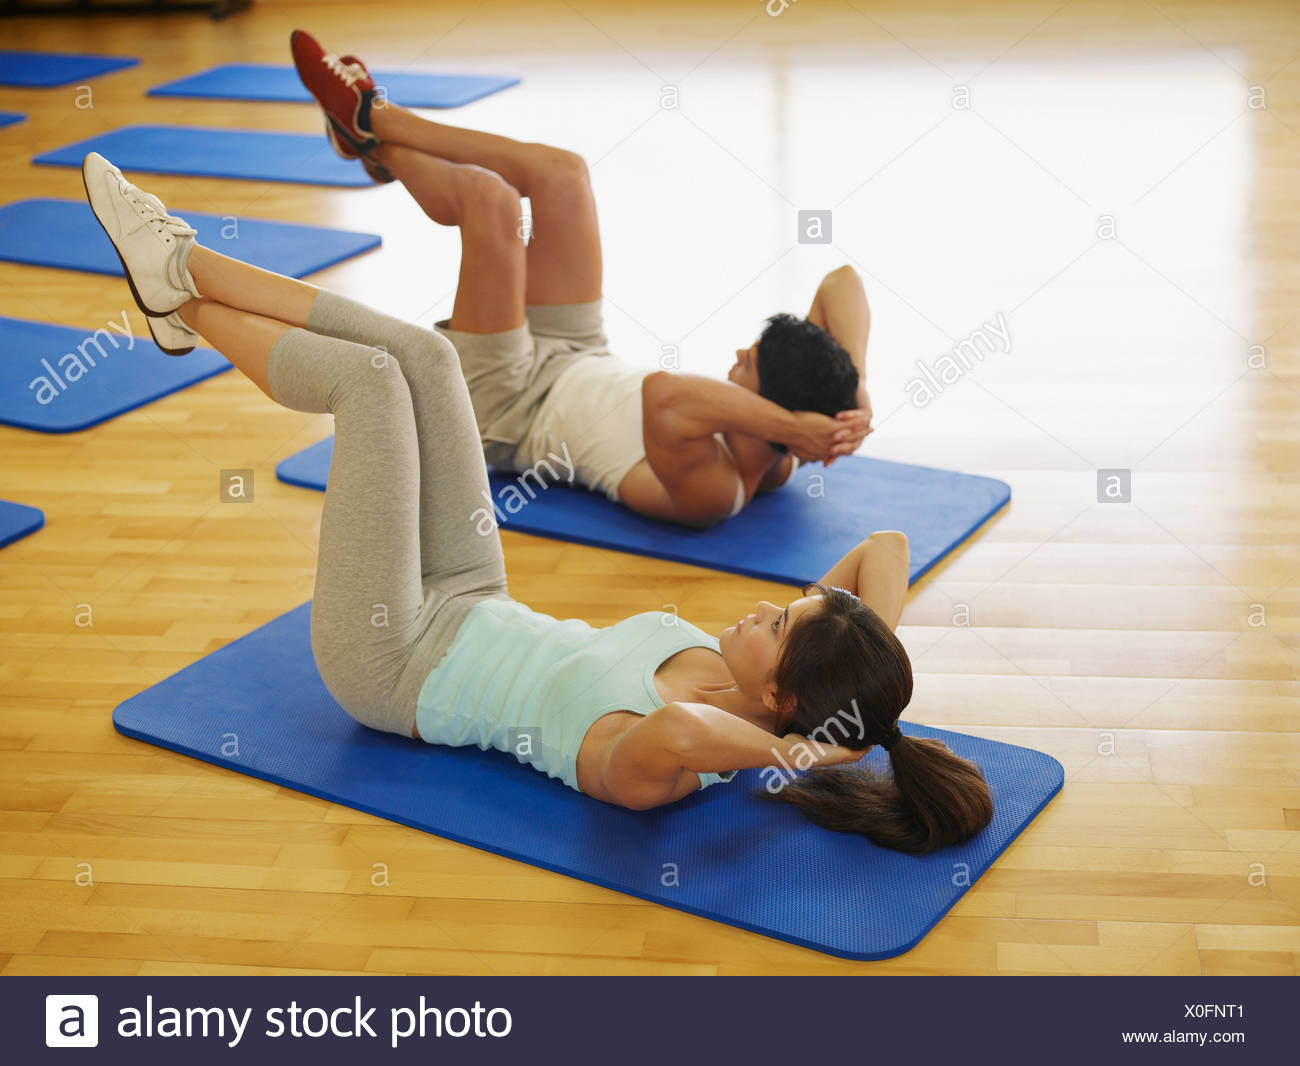 Couple doing mat exercises in a fitness studio - Stock Image